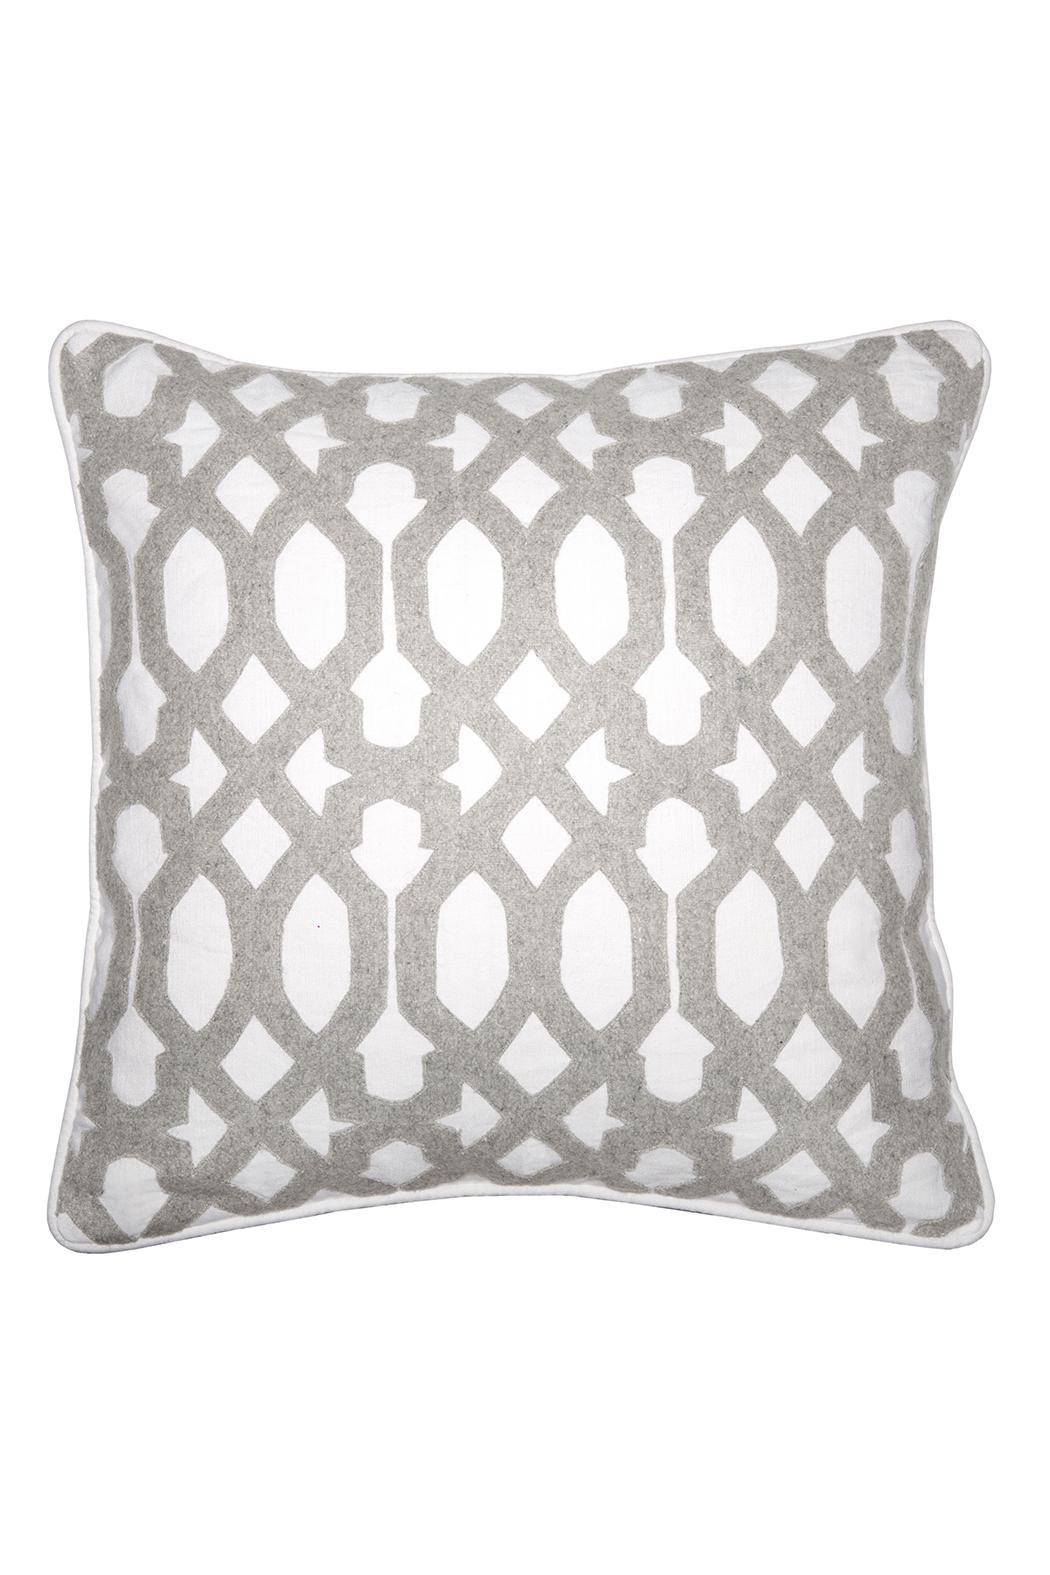 Villa home collection spirito pillow from atlanta by for Villa home collection pillows